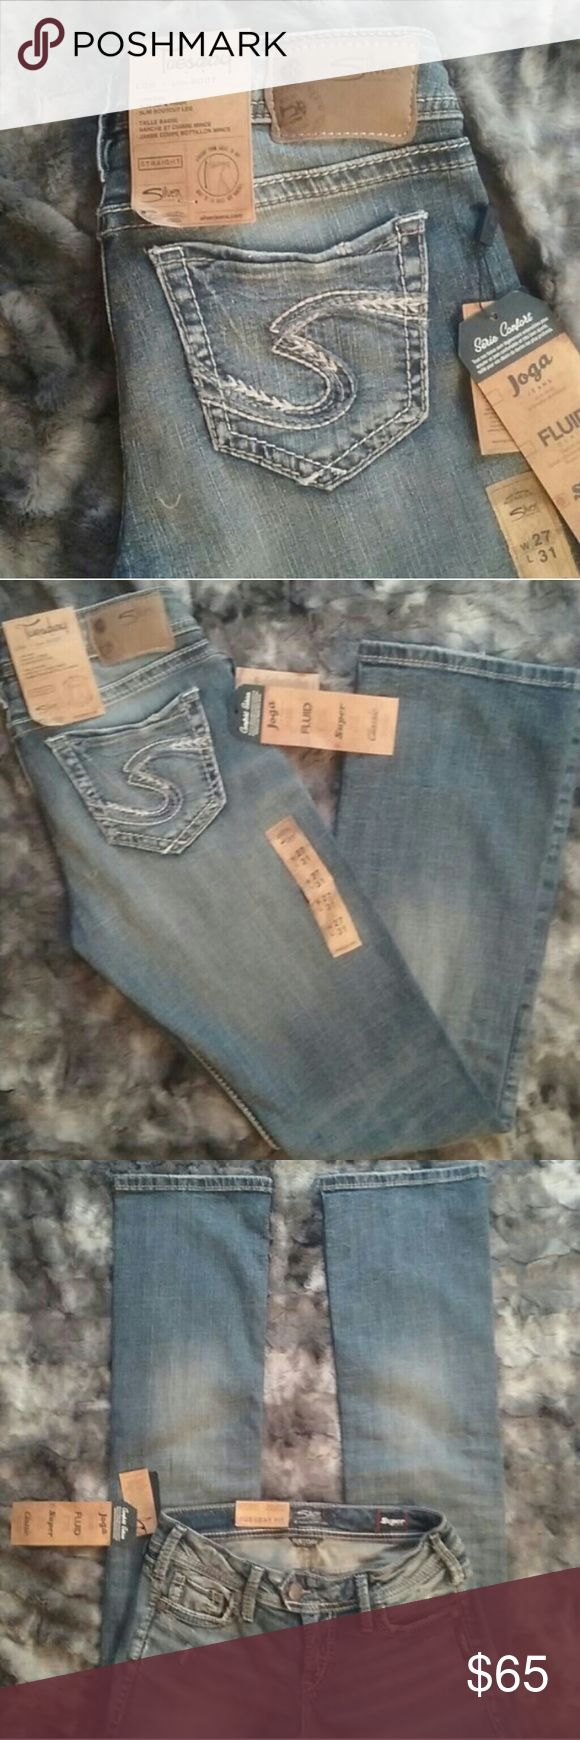 Silver jeans Tuesday Style many more to add! Bundle to save! 1 for 65 or 2 for 110 brand new off the racks. Newest styles ordered in bulk to get you... My posh friends a huge discount off retail prices Size 28/31 Silver  brand Tuesday Style Super stretchy comfortable denim Great for everyday wear... Dress them up for career wear or throw on a t shirt for your everyday errands! Your go to jeans! Silver Jeans Jeans Boot Cut